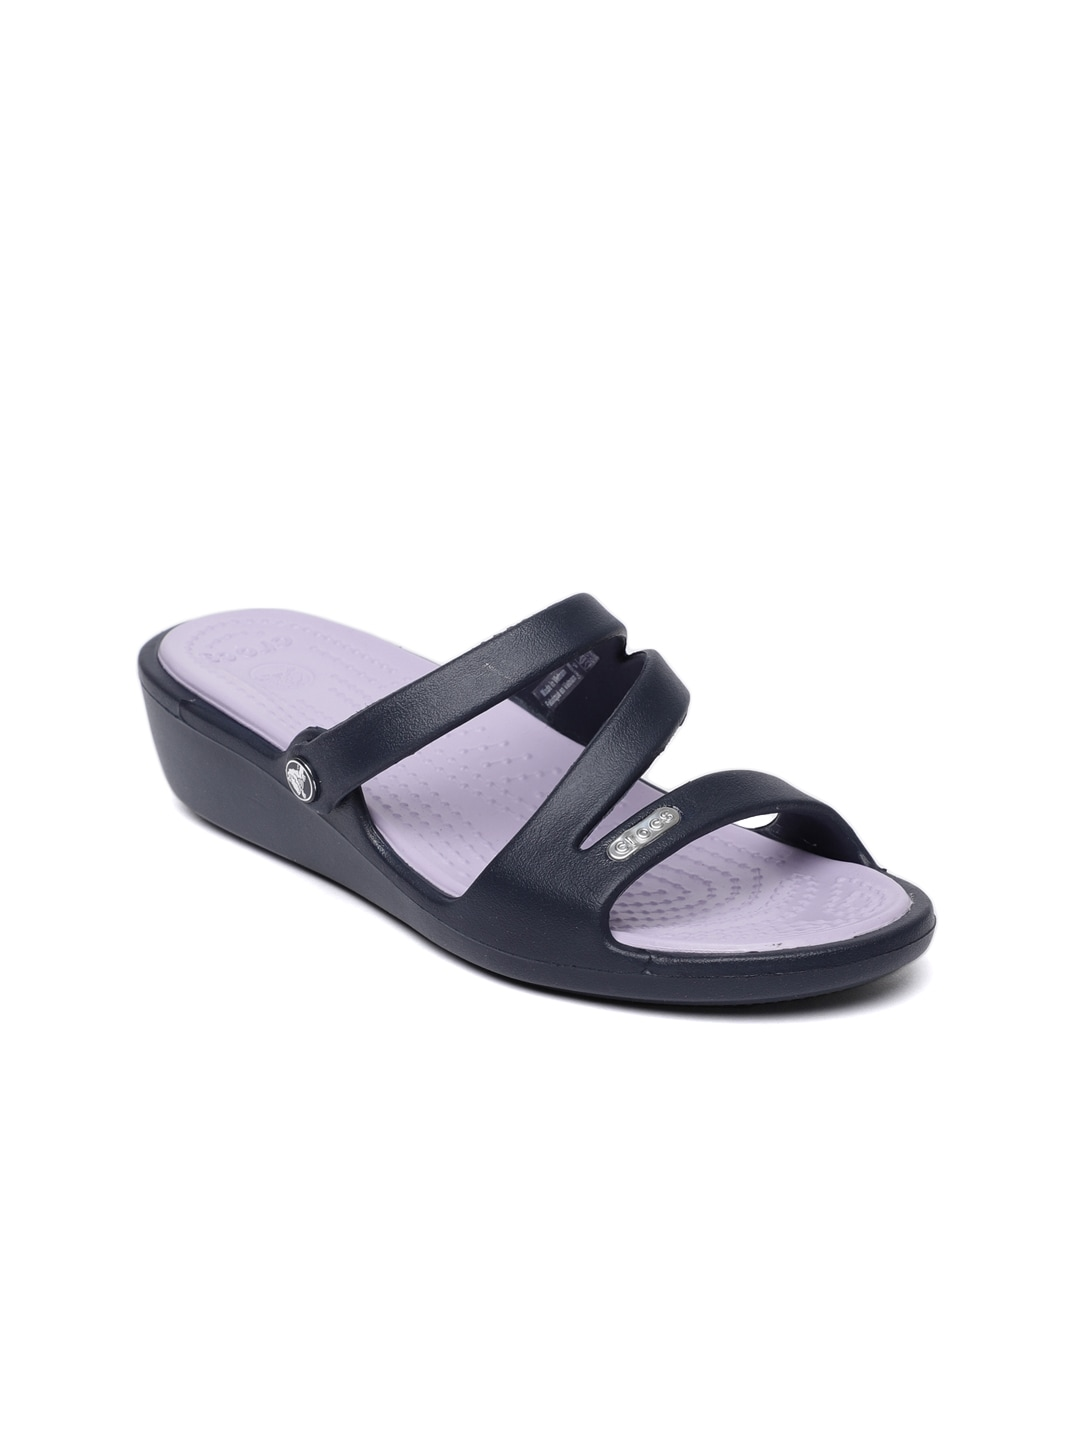 185d779520bef Crocs Wedges Footwear - Buy Crocs Wedges Footwear online in India